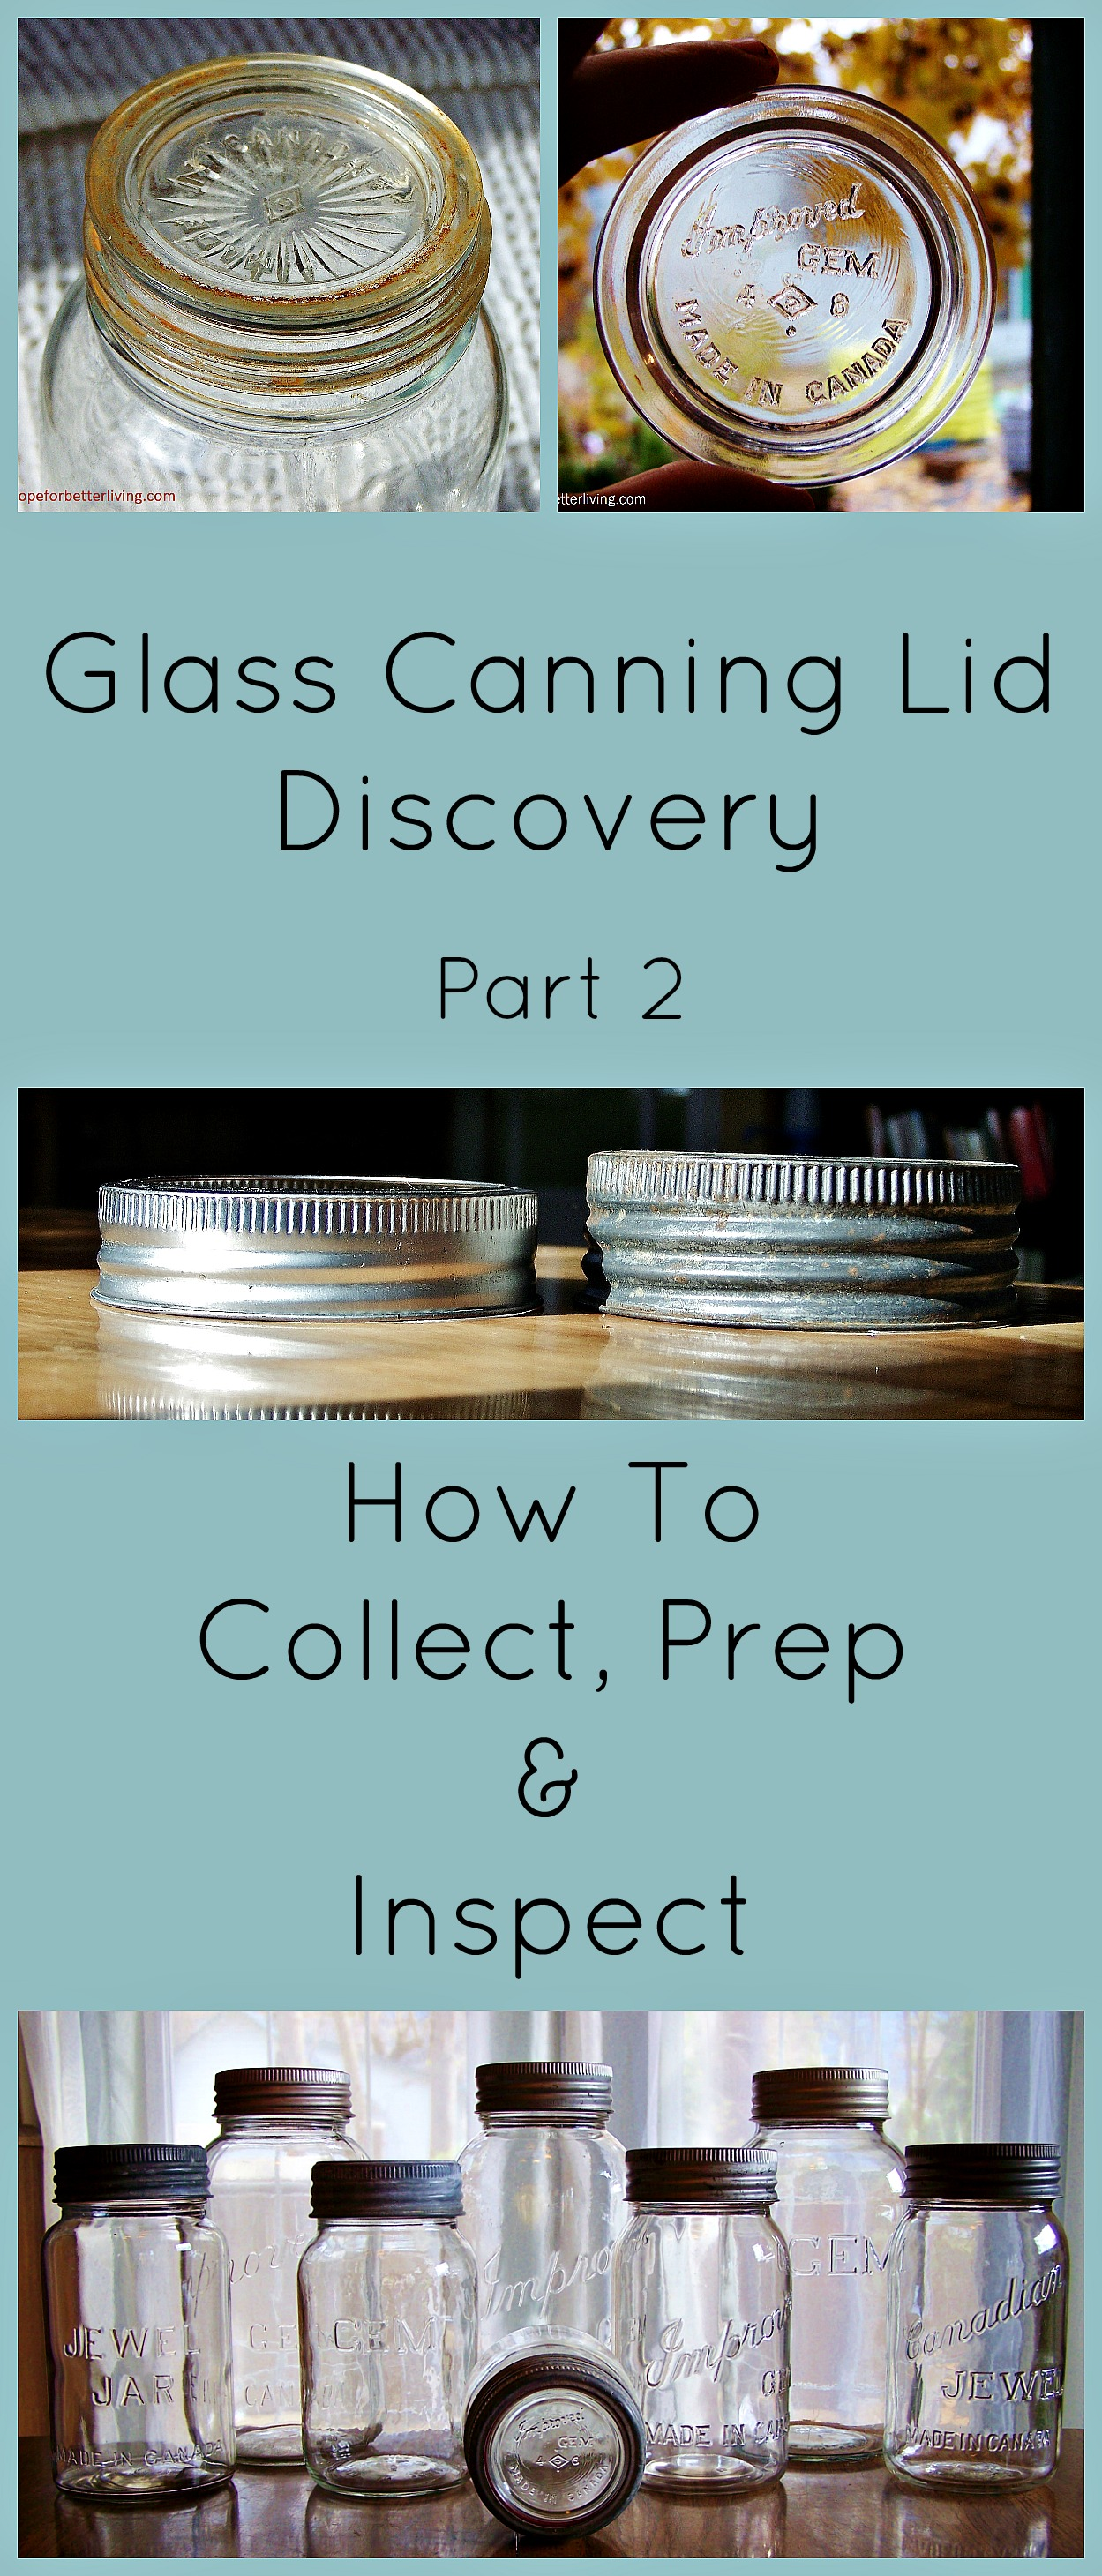 Glass Canning Lid Discovery: Part 2-How to Collect, Inspect & Prep